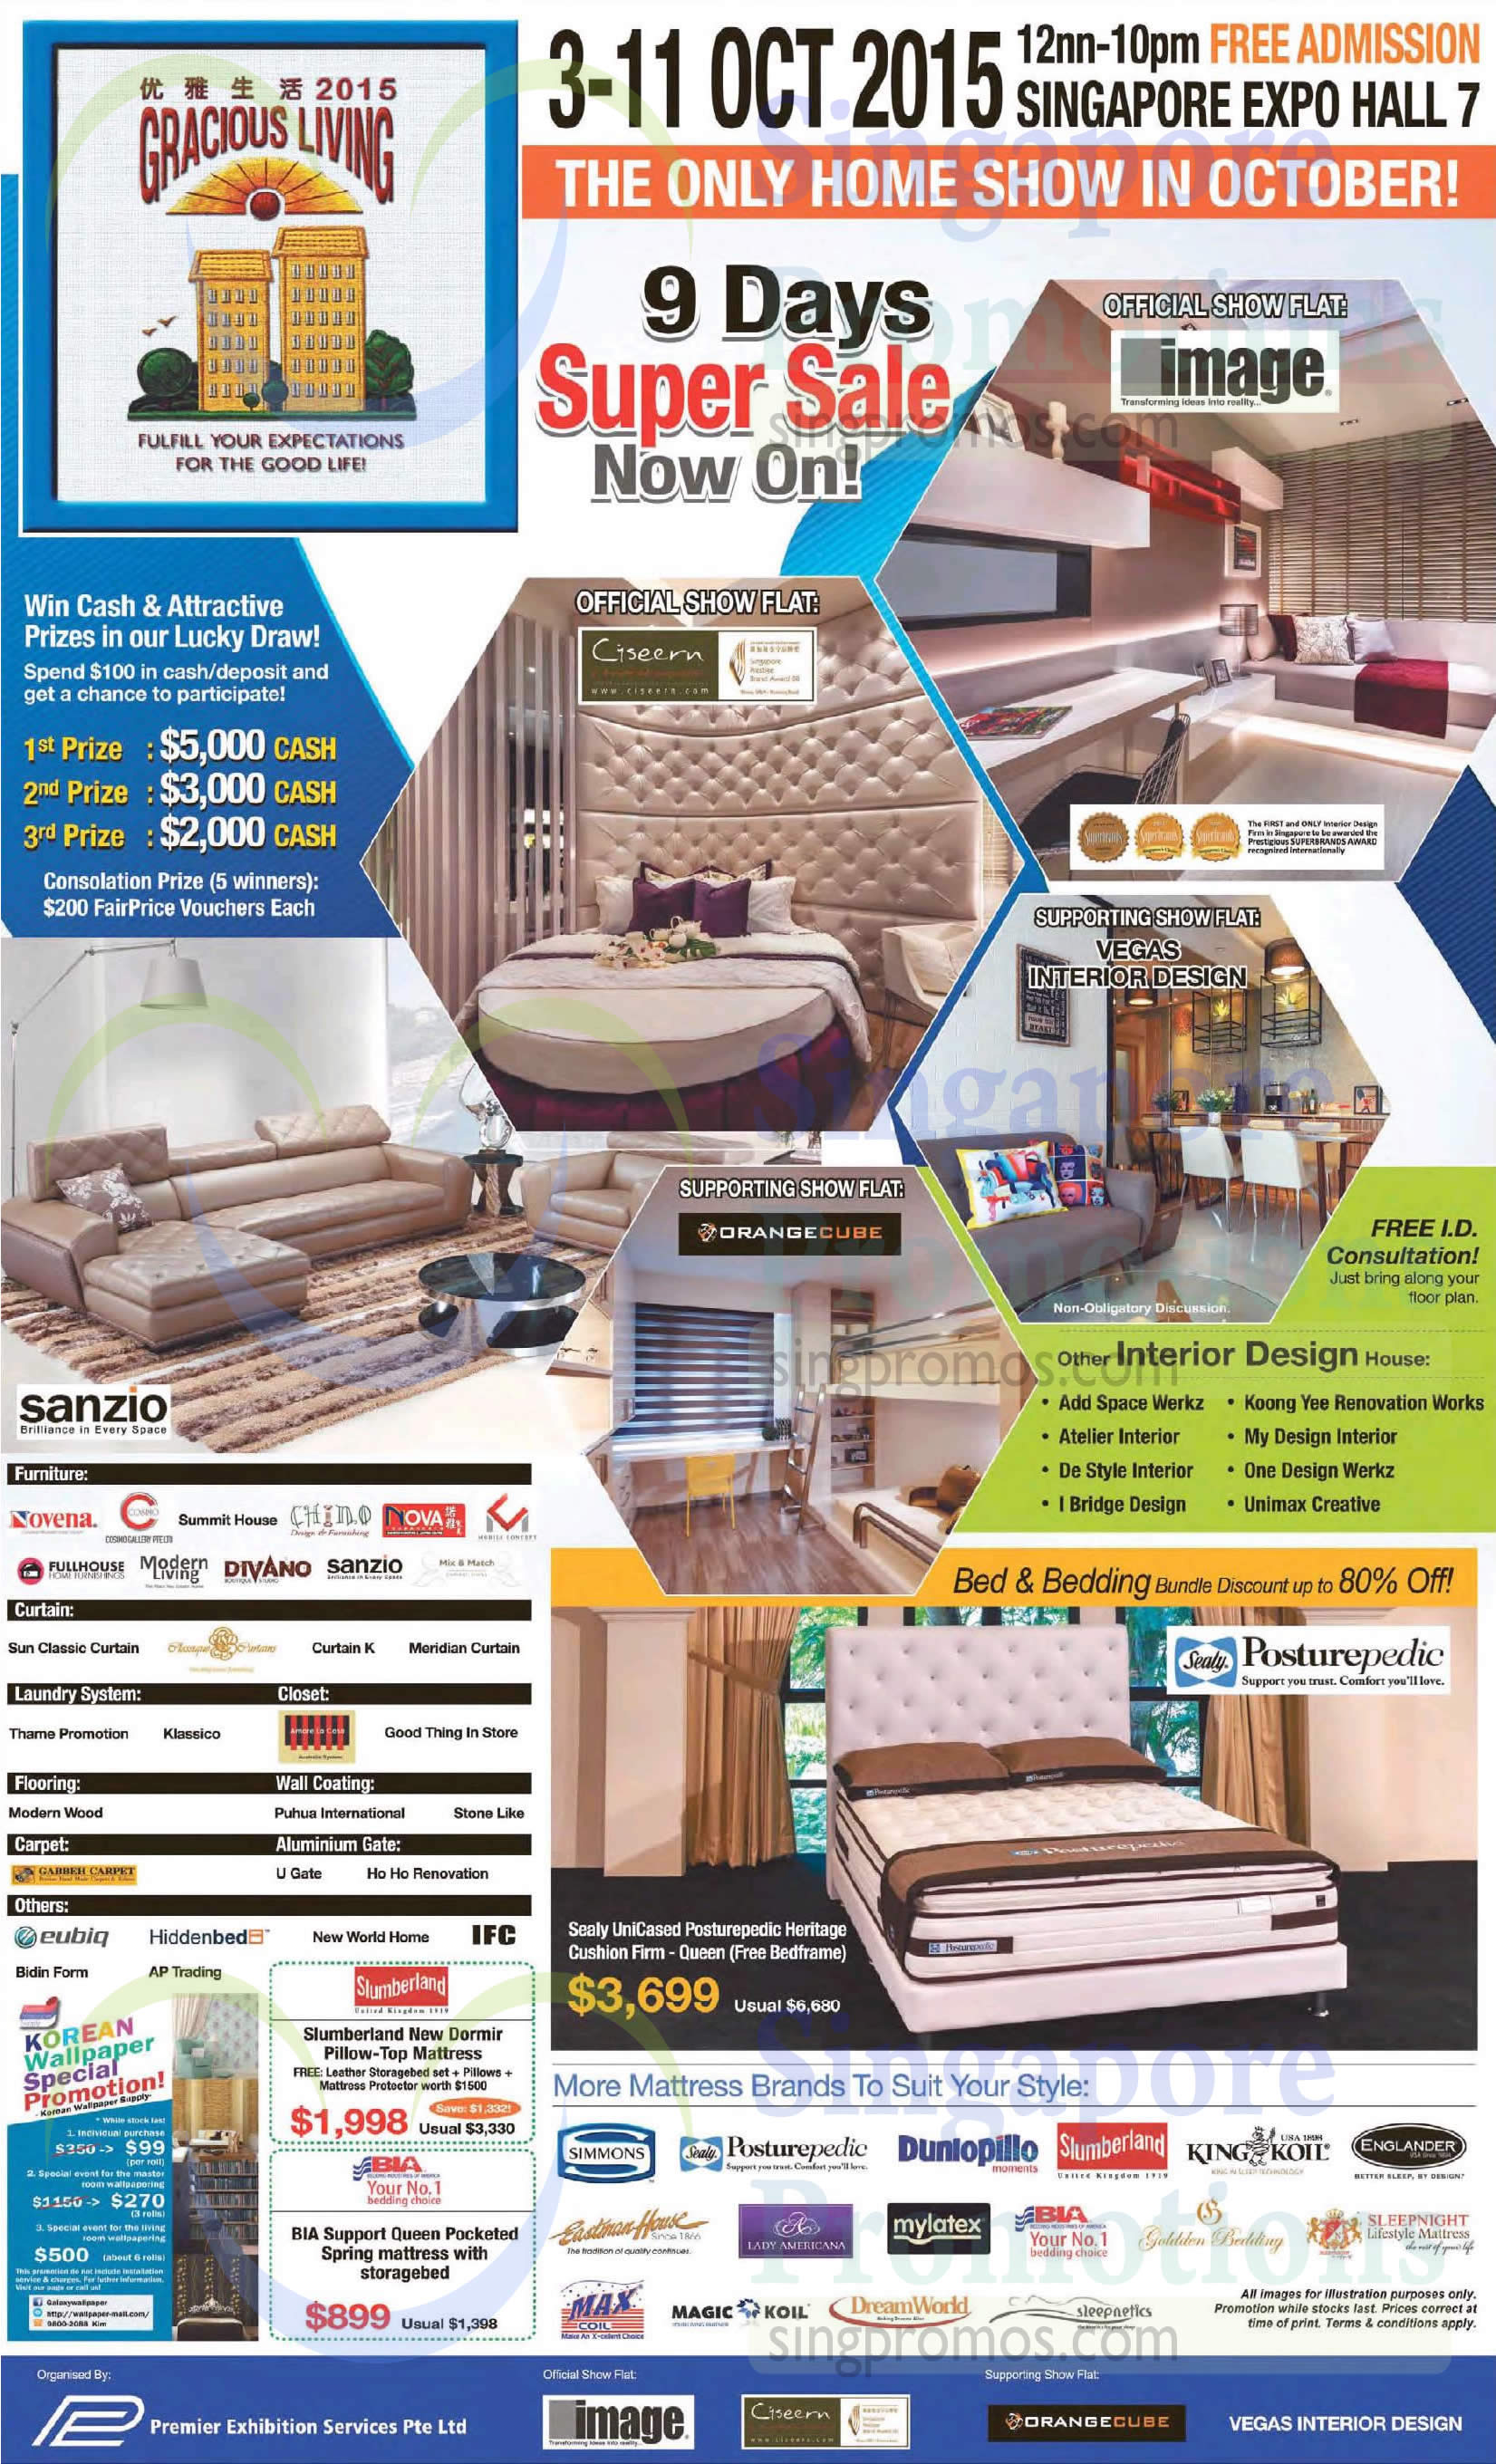 Gracious Living 3 Oct 2015 Gracious Living Singapore